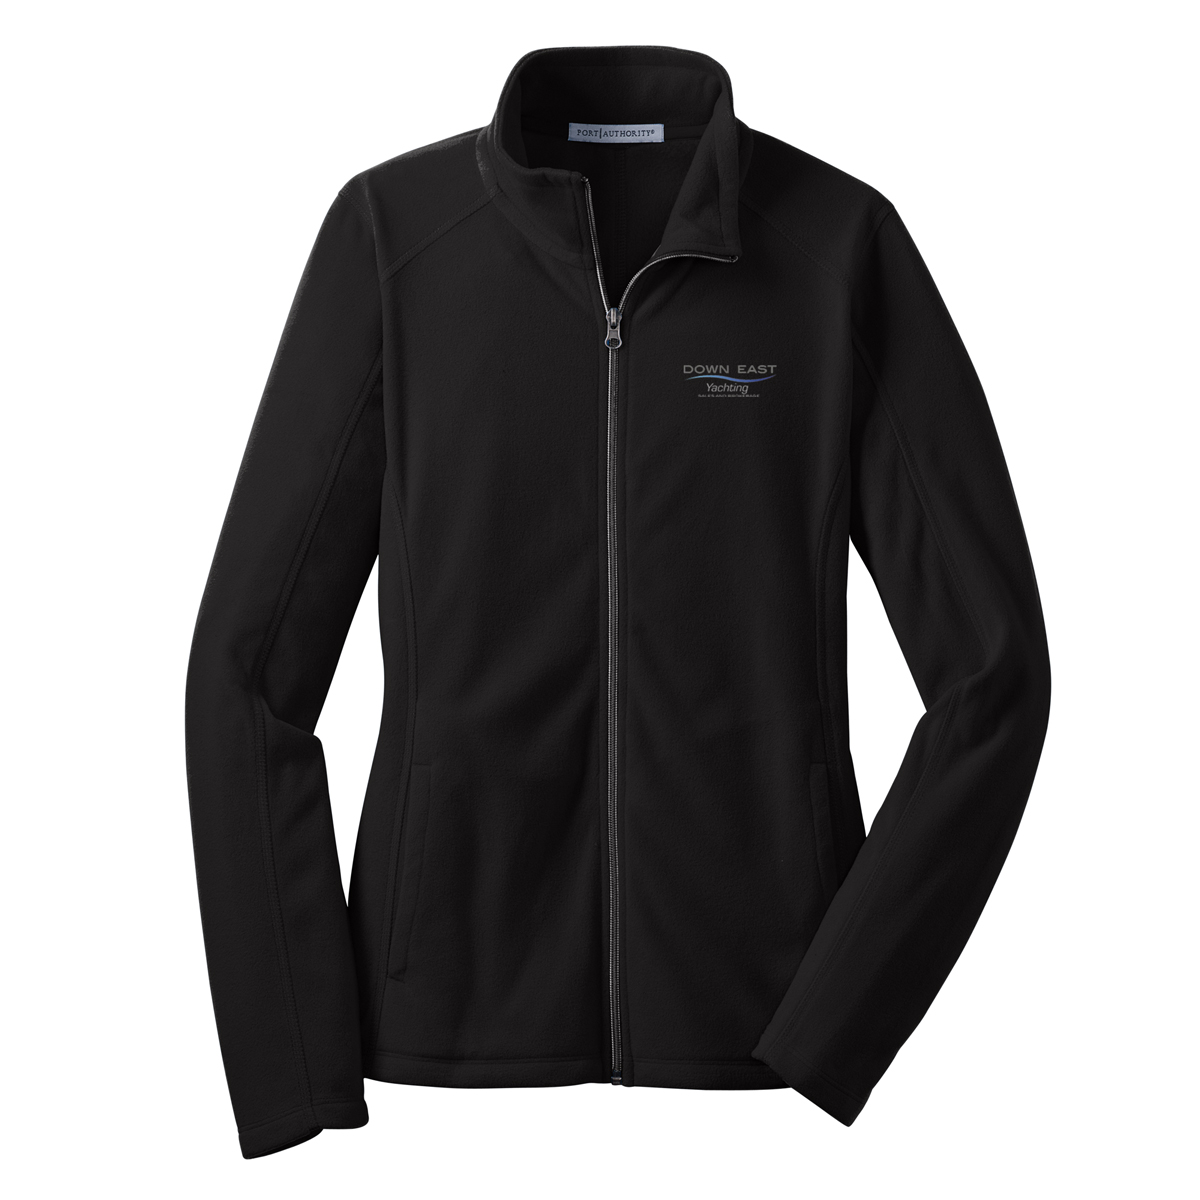 Down East Yachting - Women's Full Zip Fleece Jacket